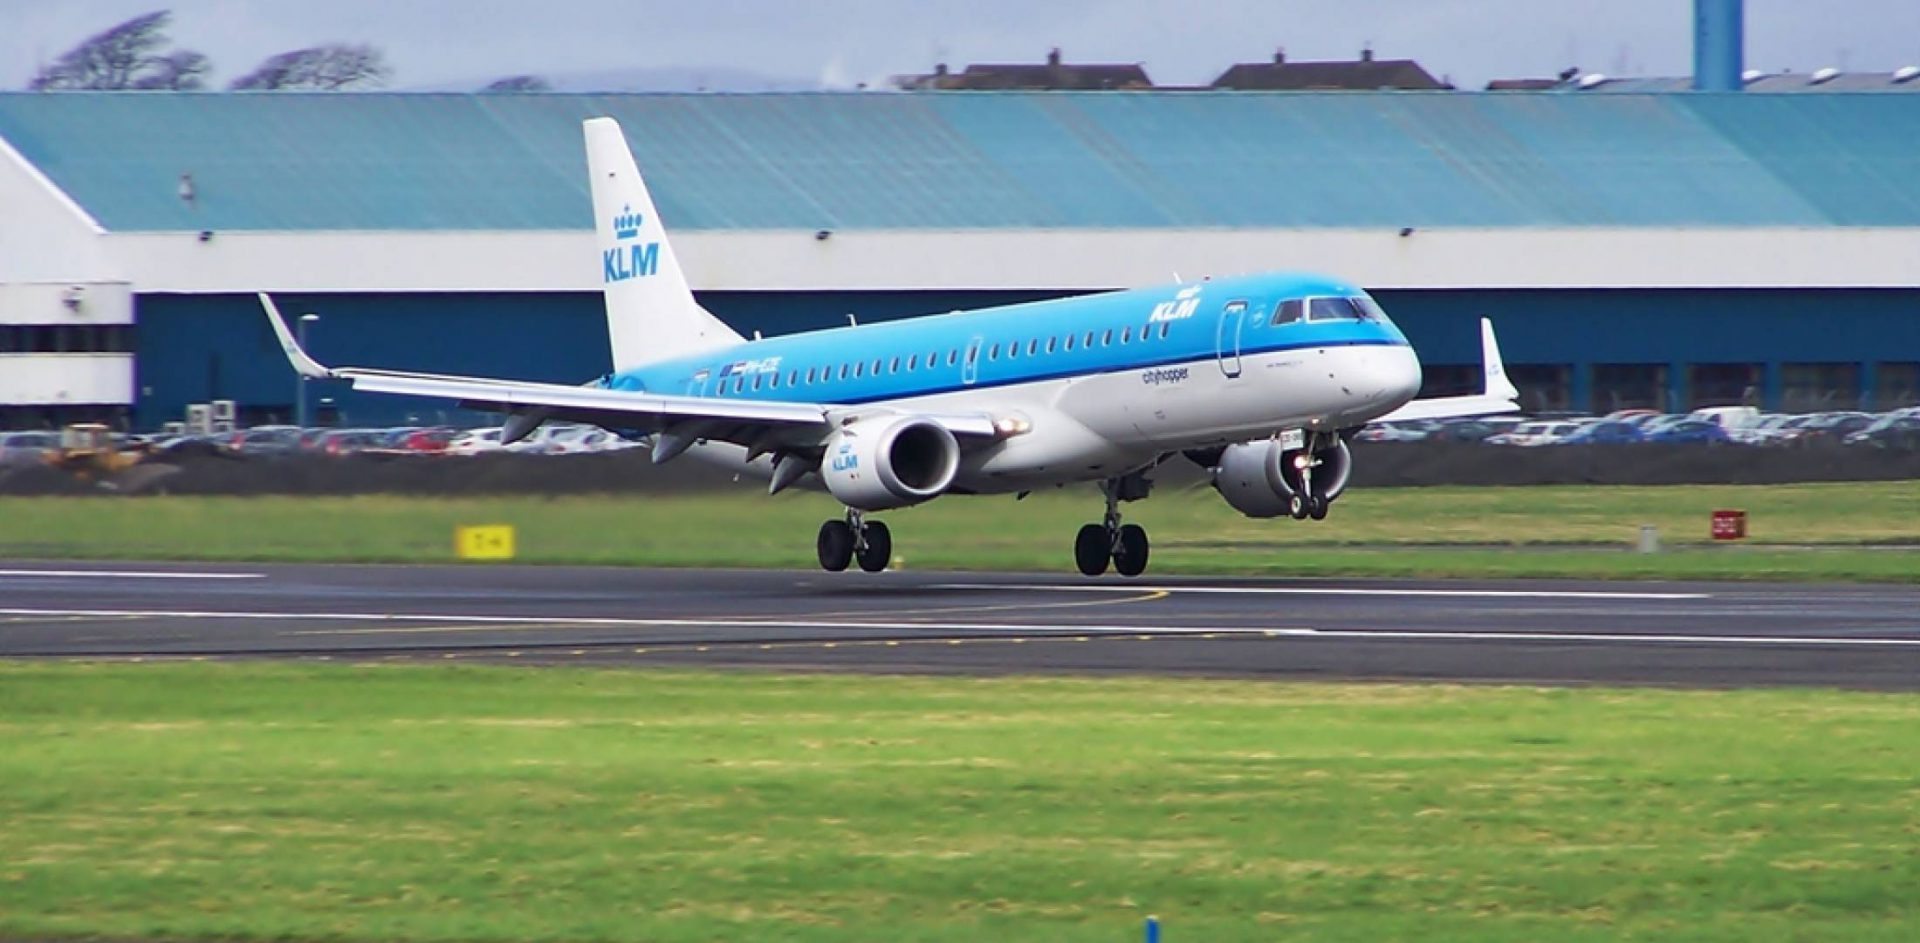 Air France KLM plans to operate half the regular routes